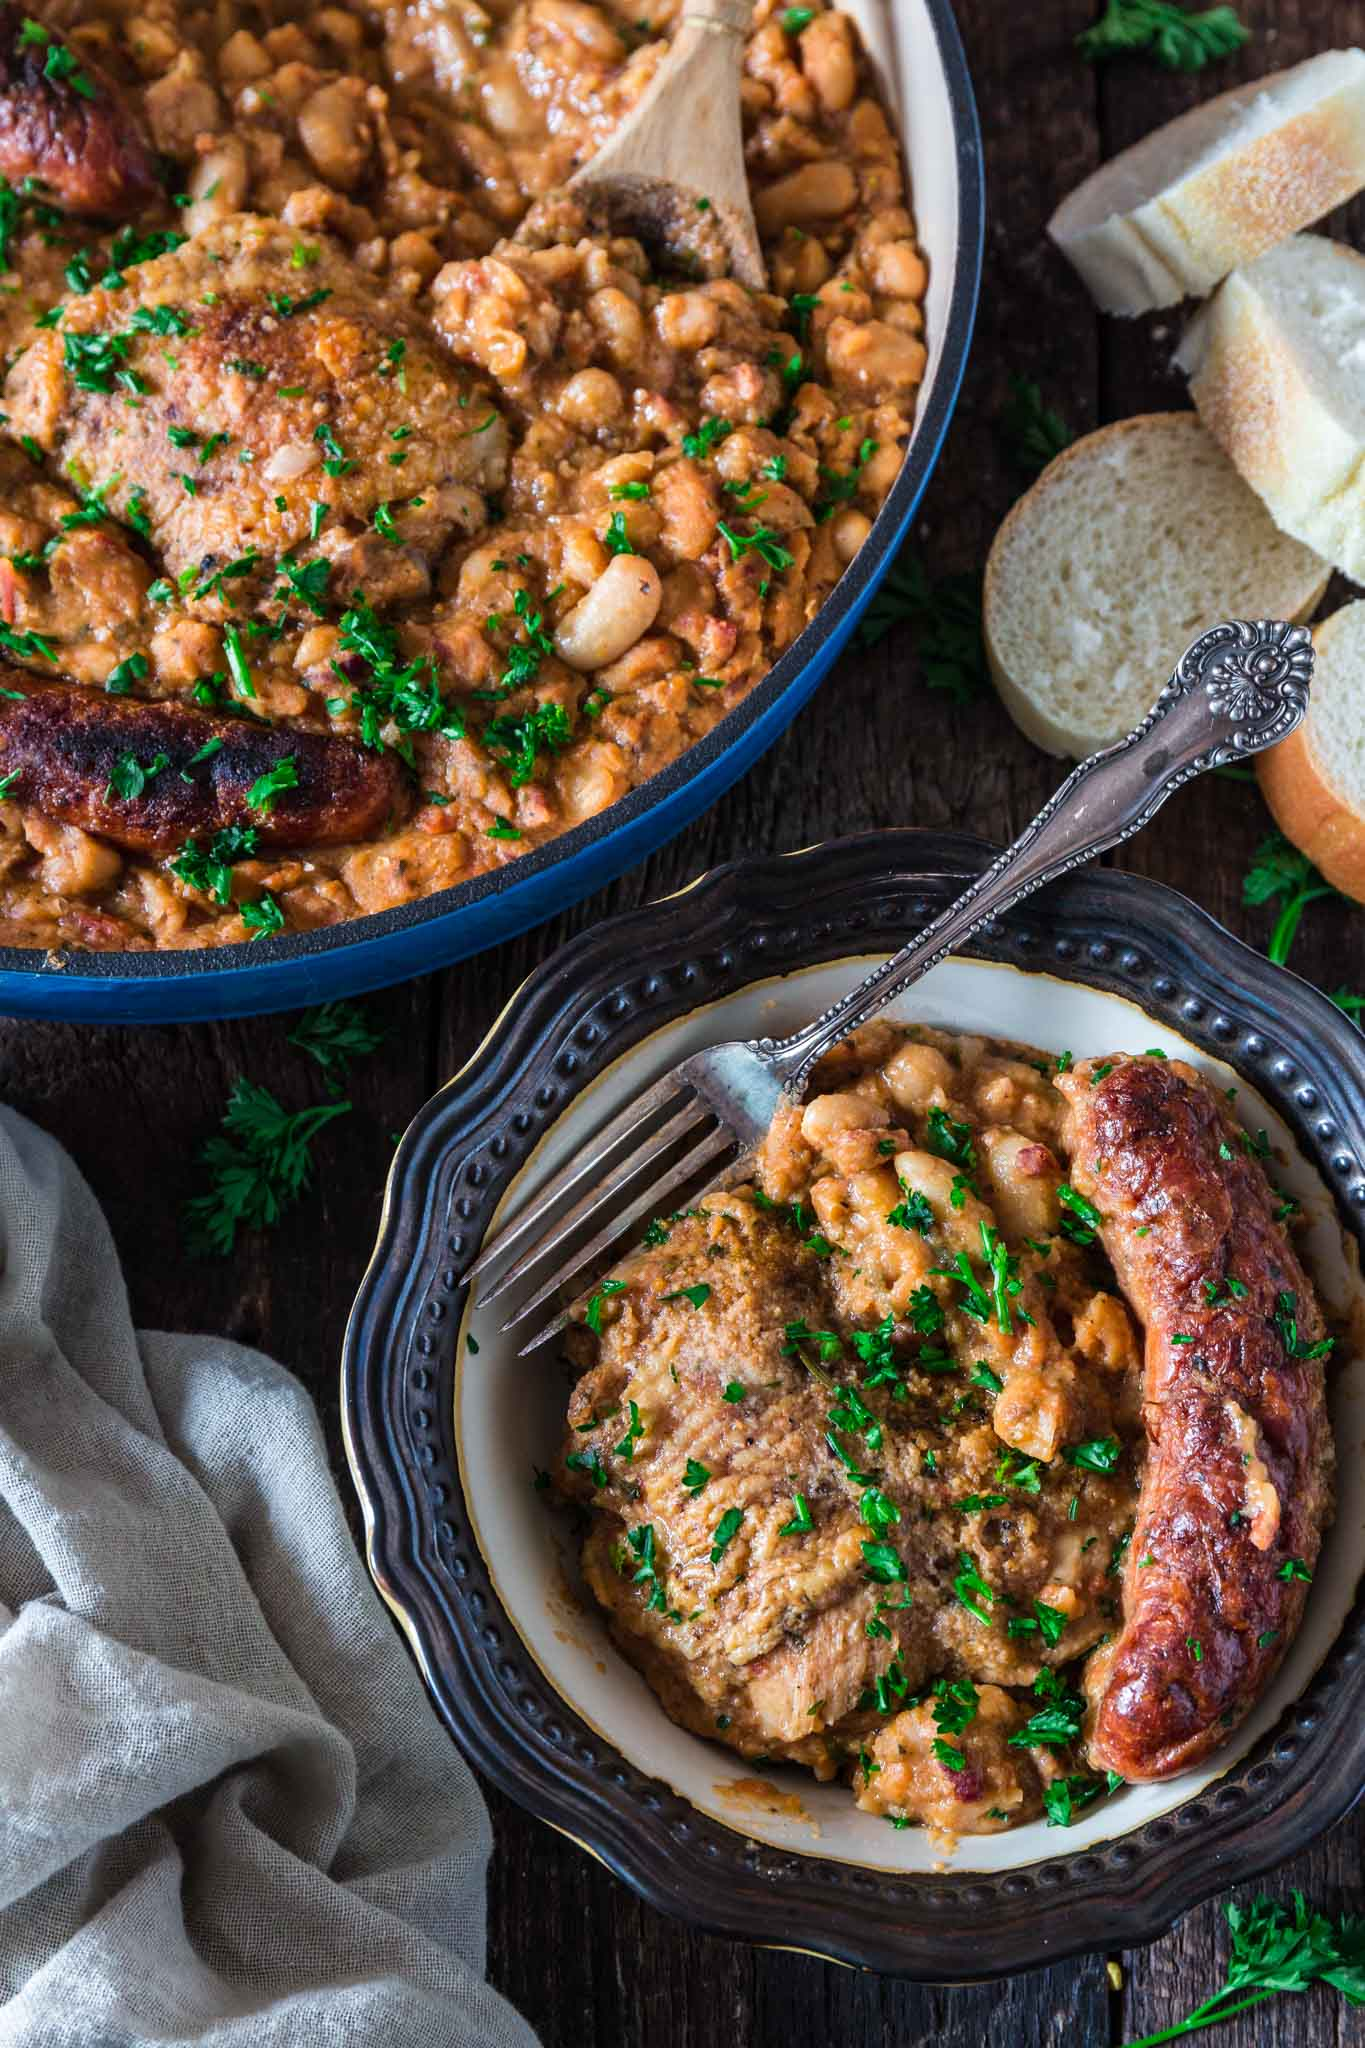 Sausage and Chicken Cassoulet | www.oliviascuisine.com | Inspired by the traditional French dish, this Sausage and Chicken Cassoulet is rich, hearty and perfect for cold winter days. It can be a labor of love, but - believe me - it is so worth it!